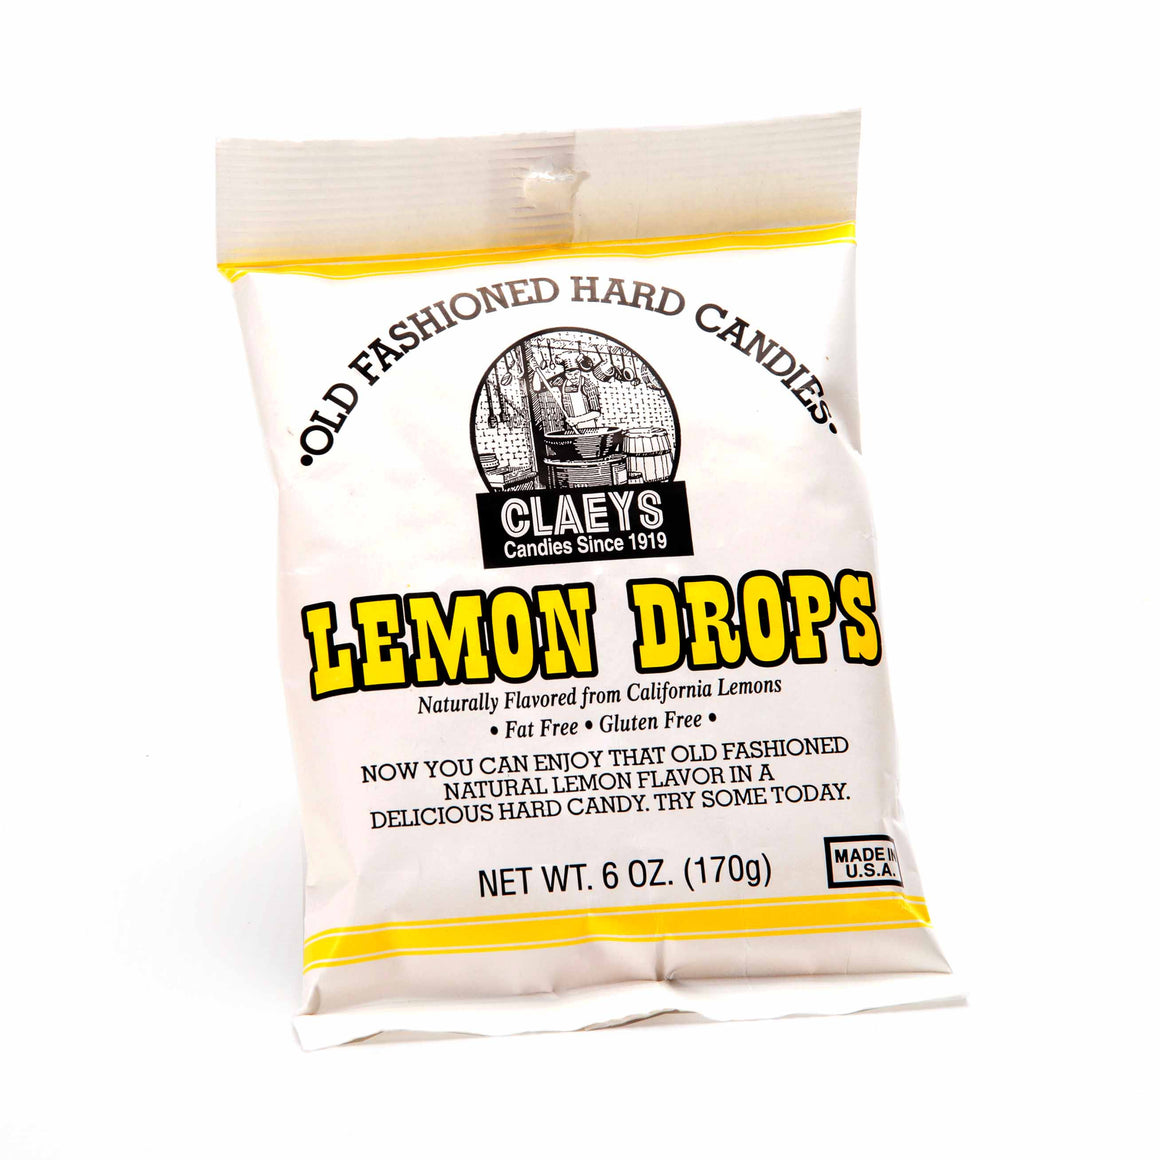 Hydrating Lemon Drops product image - included with Dr. Don's Care Packages Sympathy Condolence Care Package.